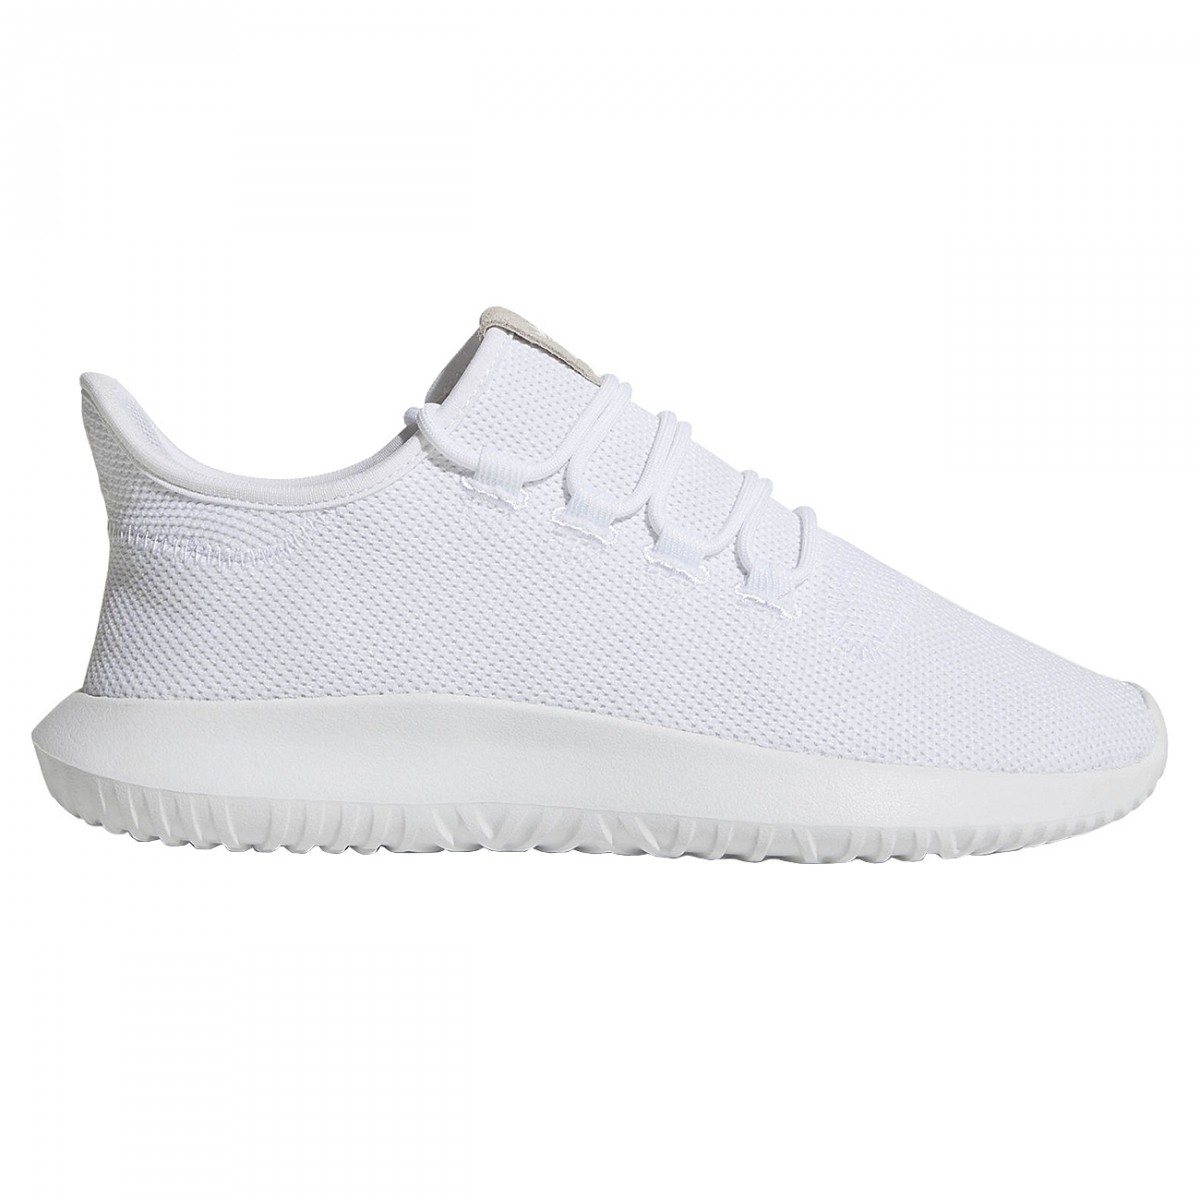 quality design 2fb51 fd2c0 Sneakers Adidas Tubular Shadow Donna bianco